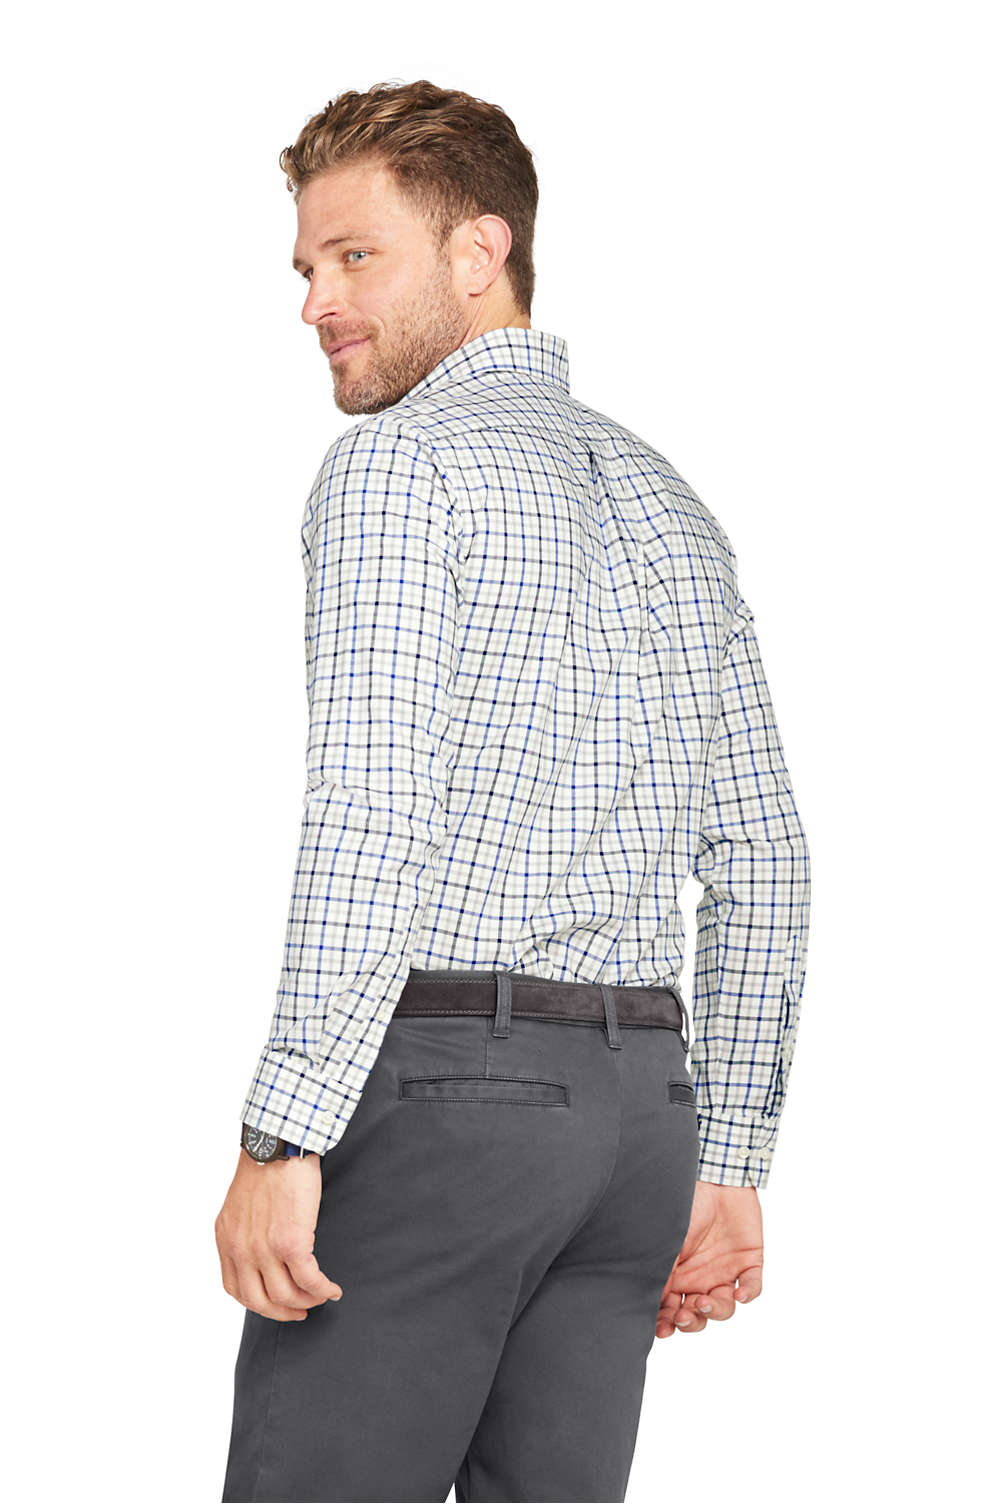 Mens No Iron Twill Shirt From Lands End